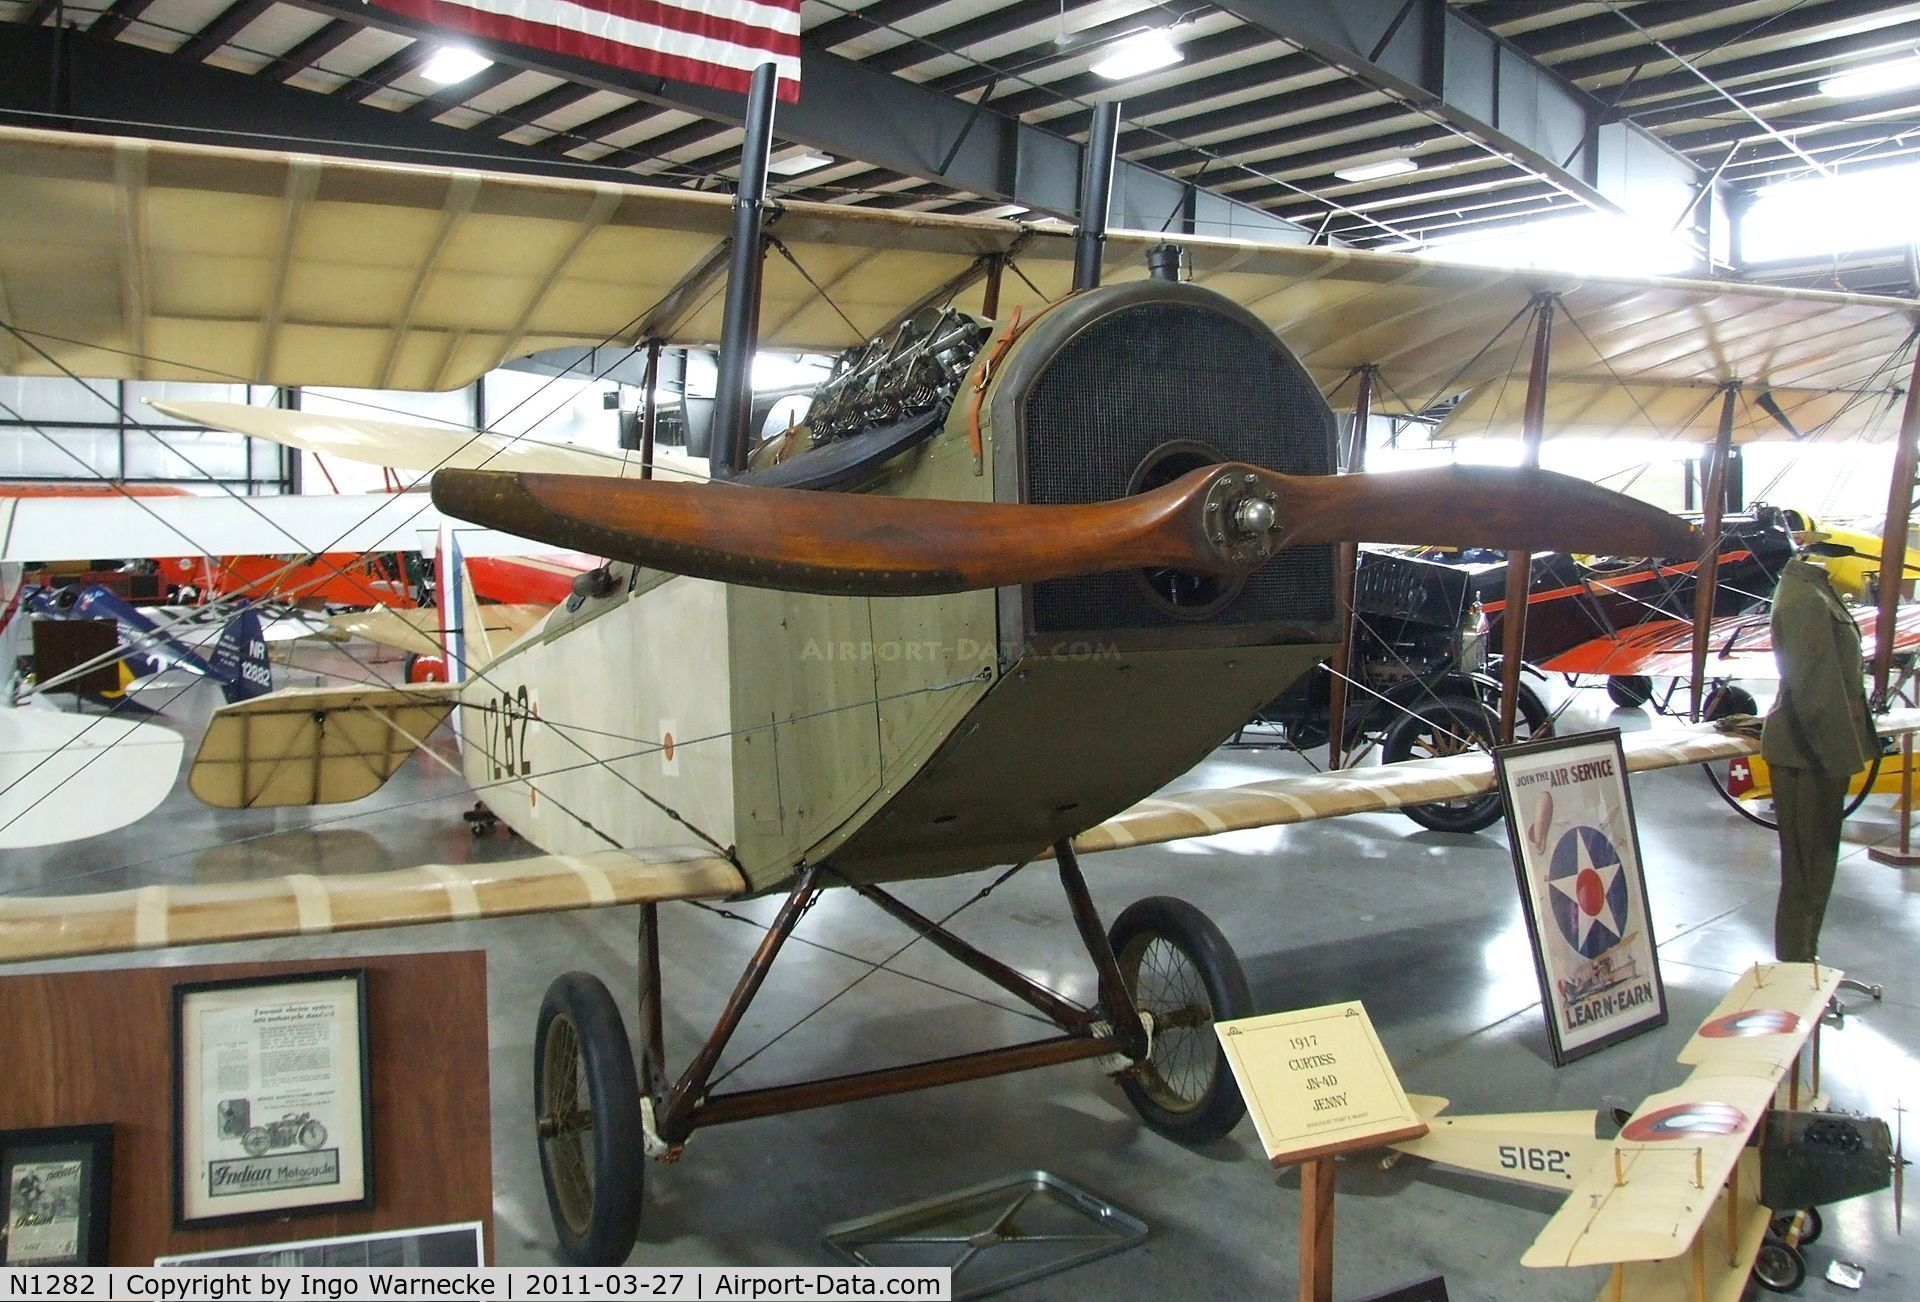 N1282, 1917 Curtiss JN-4D Jenny C/N 1, Curtiss JN-4D at the Western Antique Aeroplane and Automobile Museum, Hood River OR